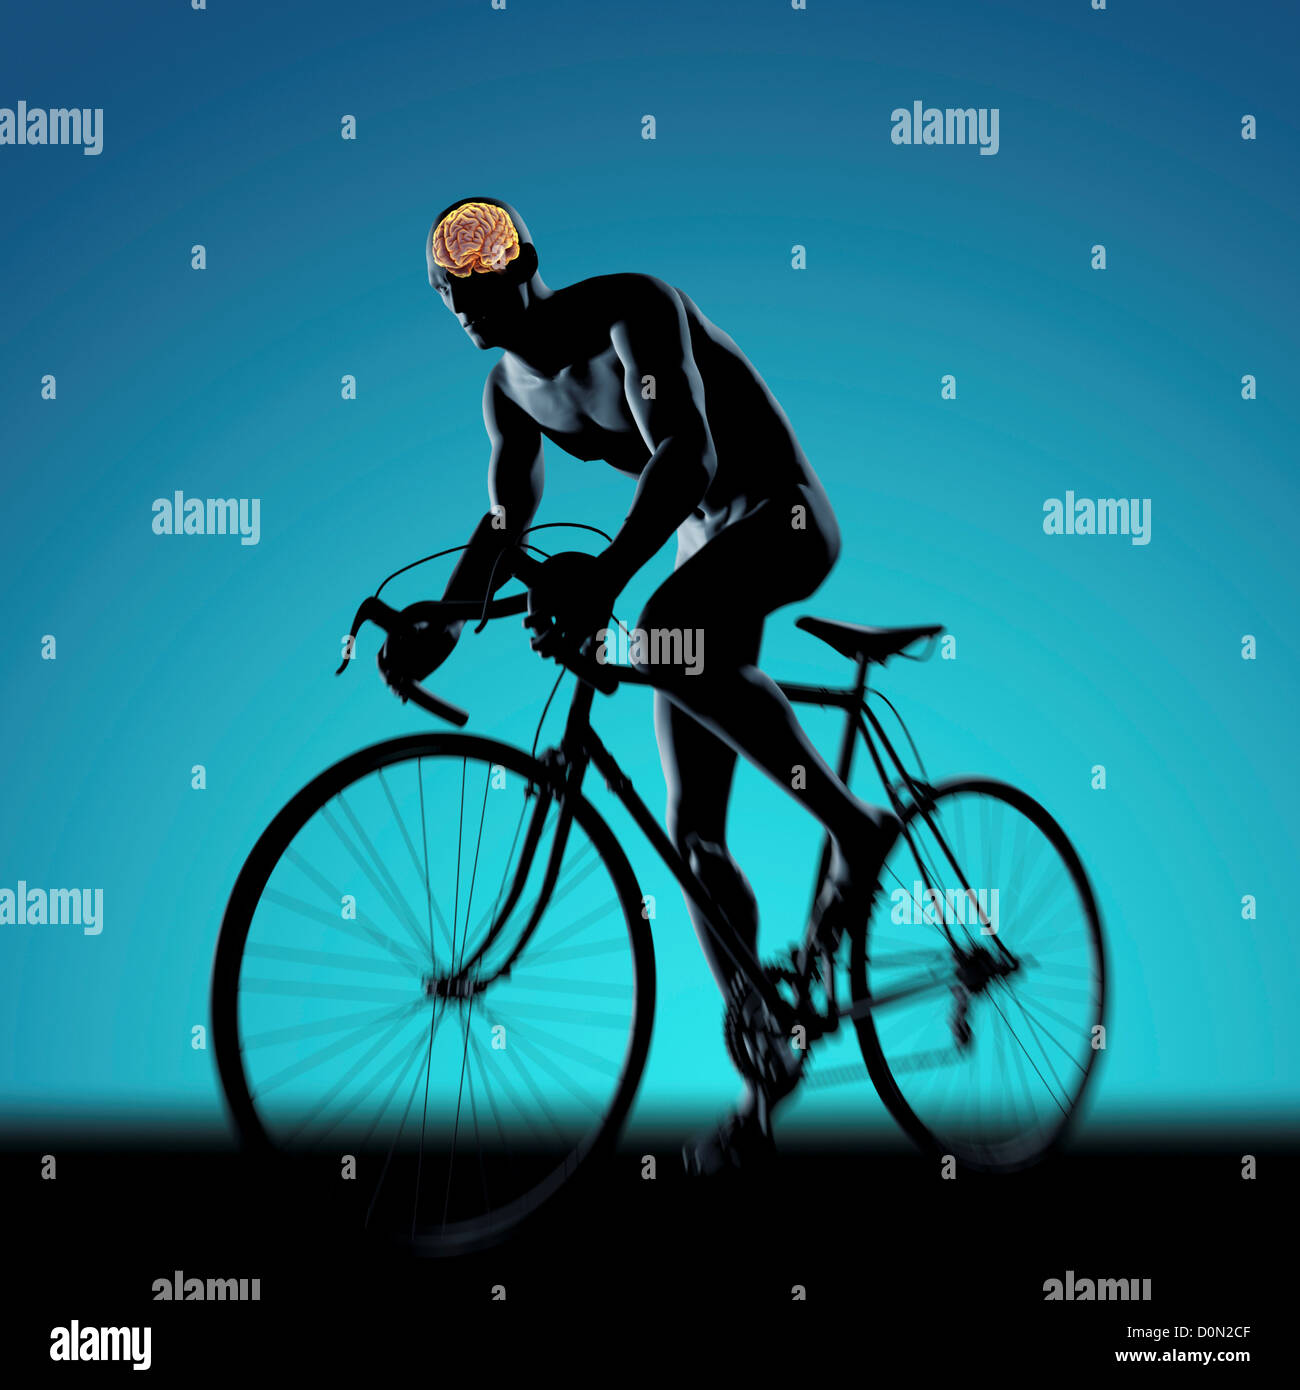 Silhouetted Male Figure Cycling A Bicycle With Internal Anatomy Of